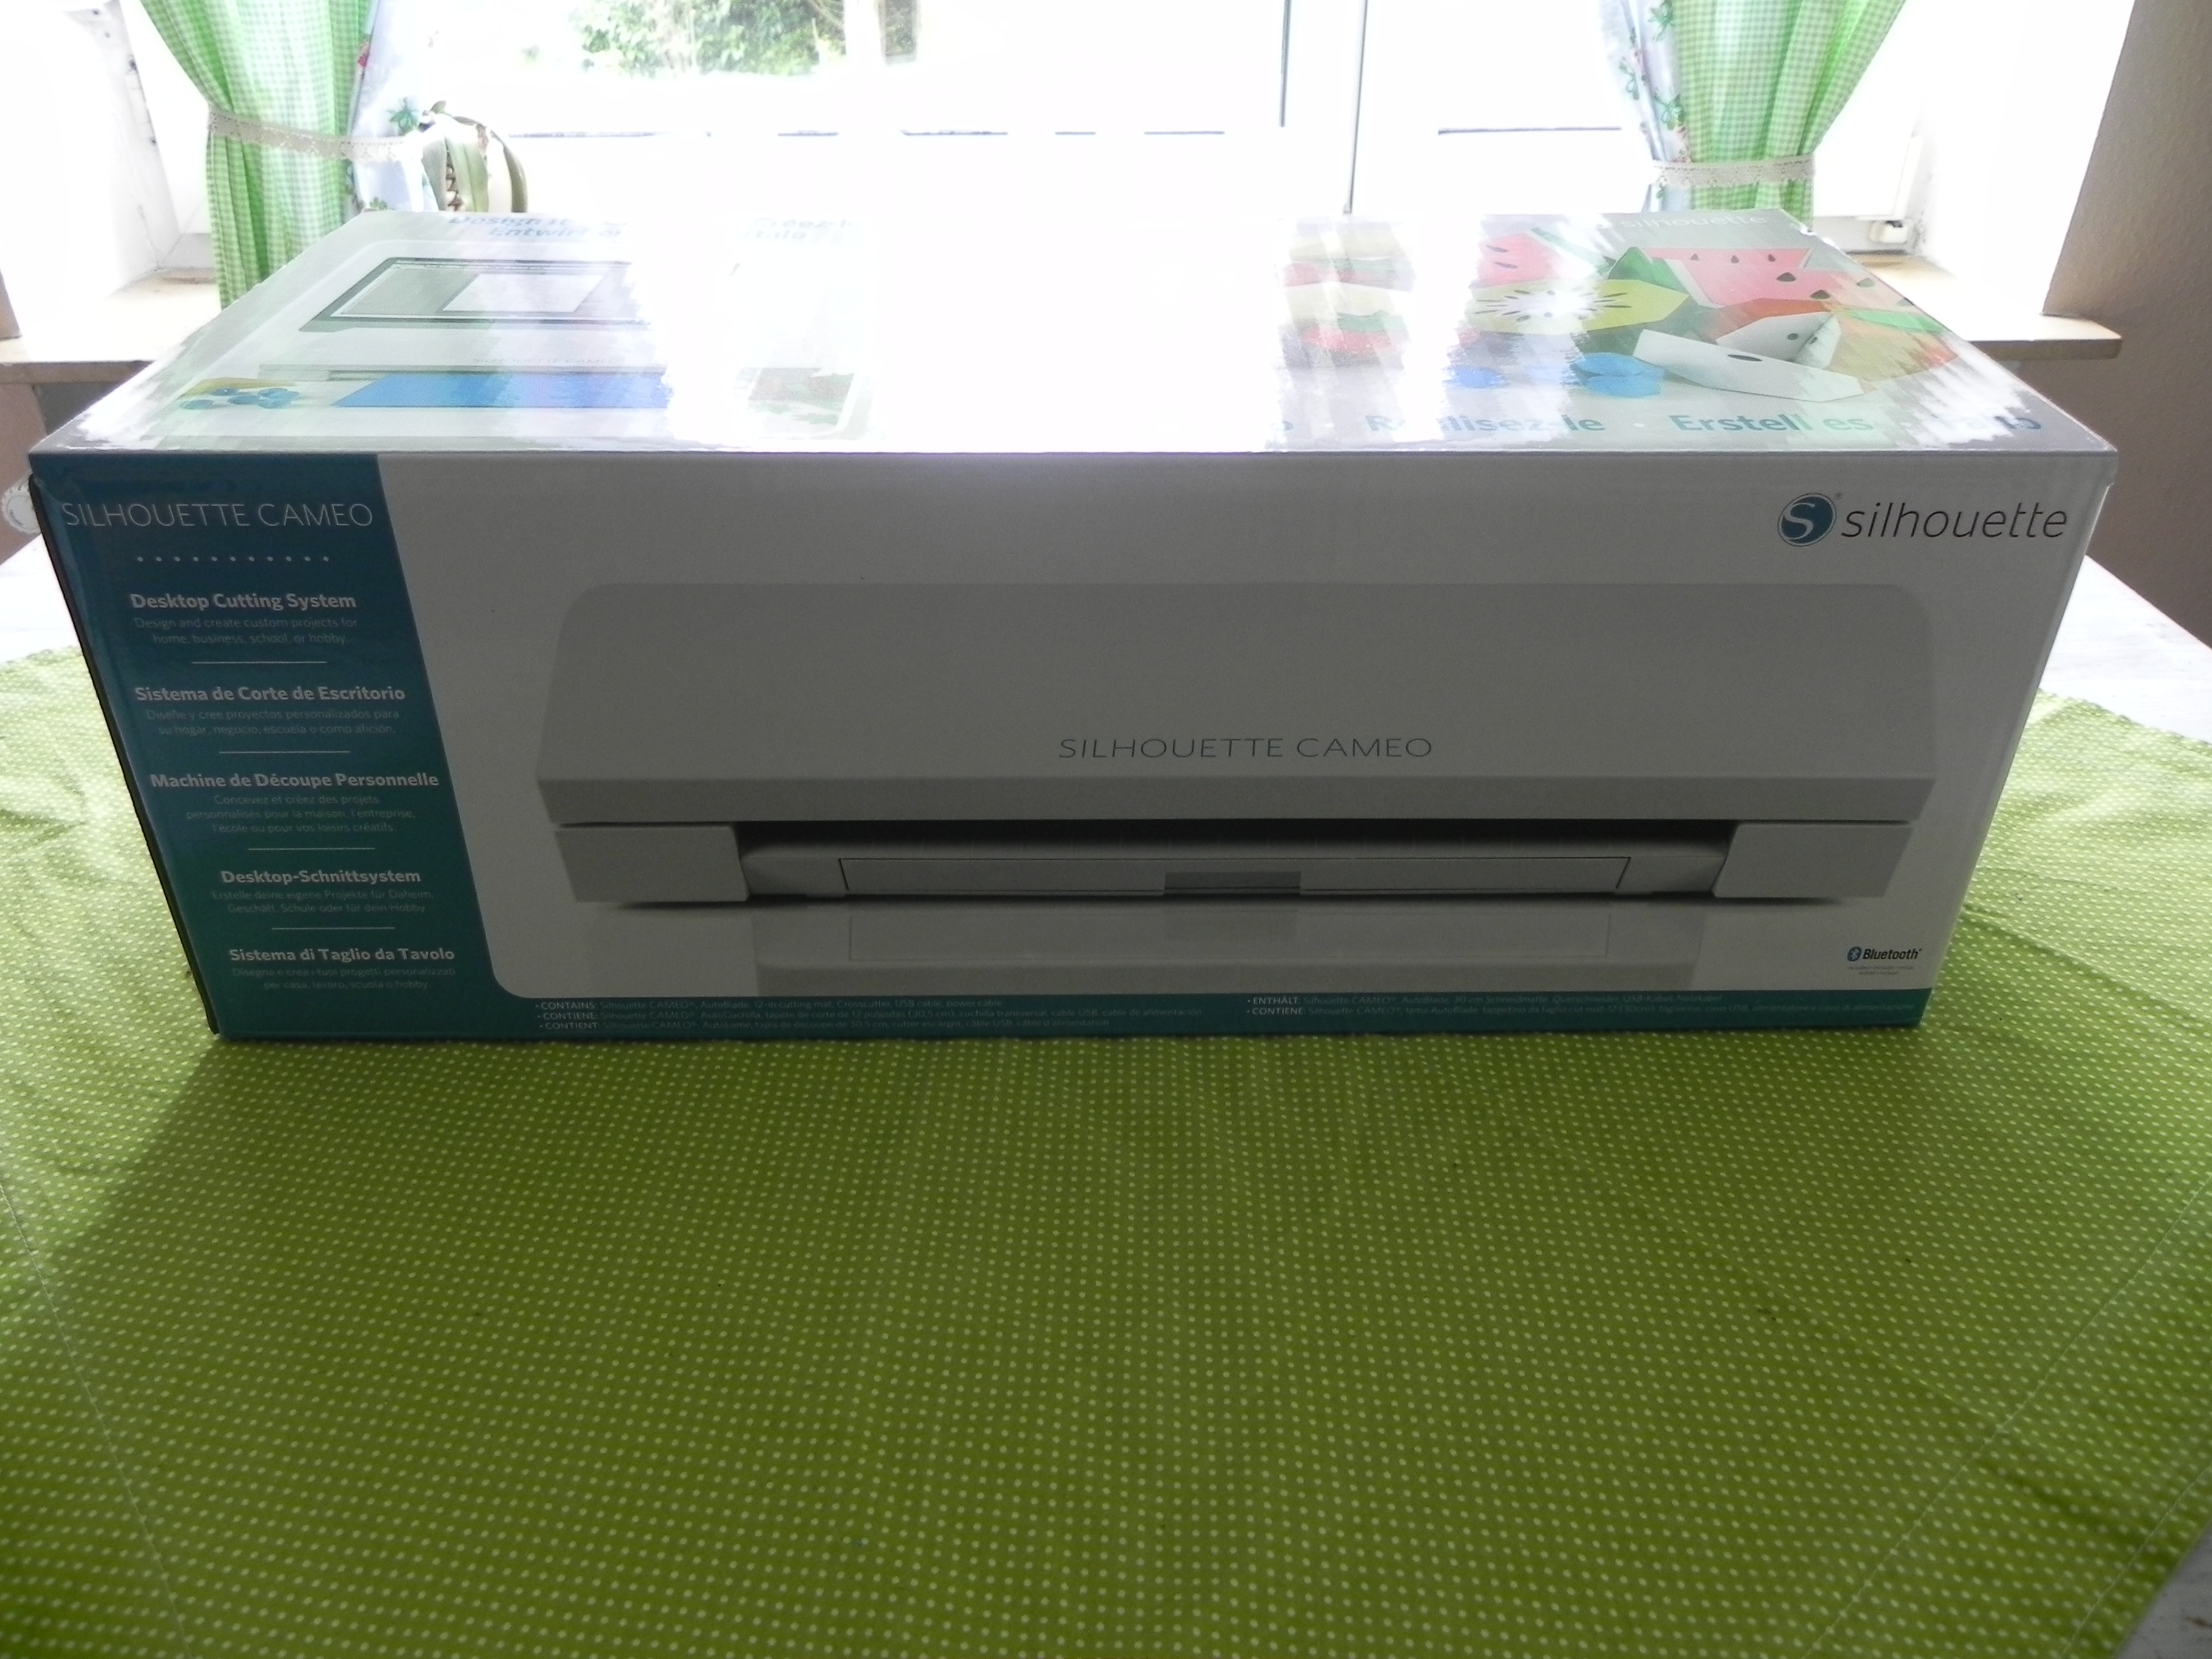 eee1ca006 Silhouette Cameo 3 Plotter Test - Technology and Finances